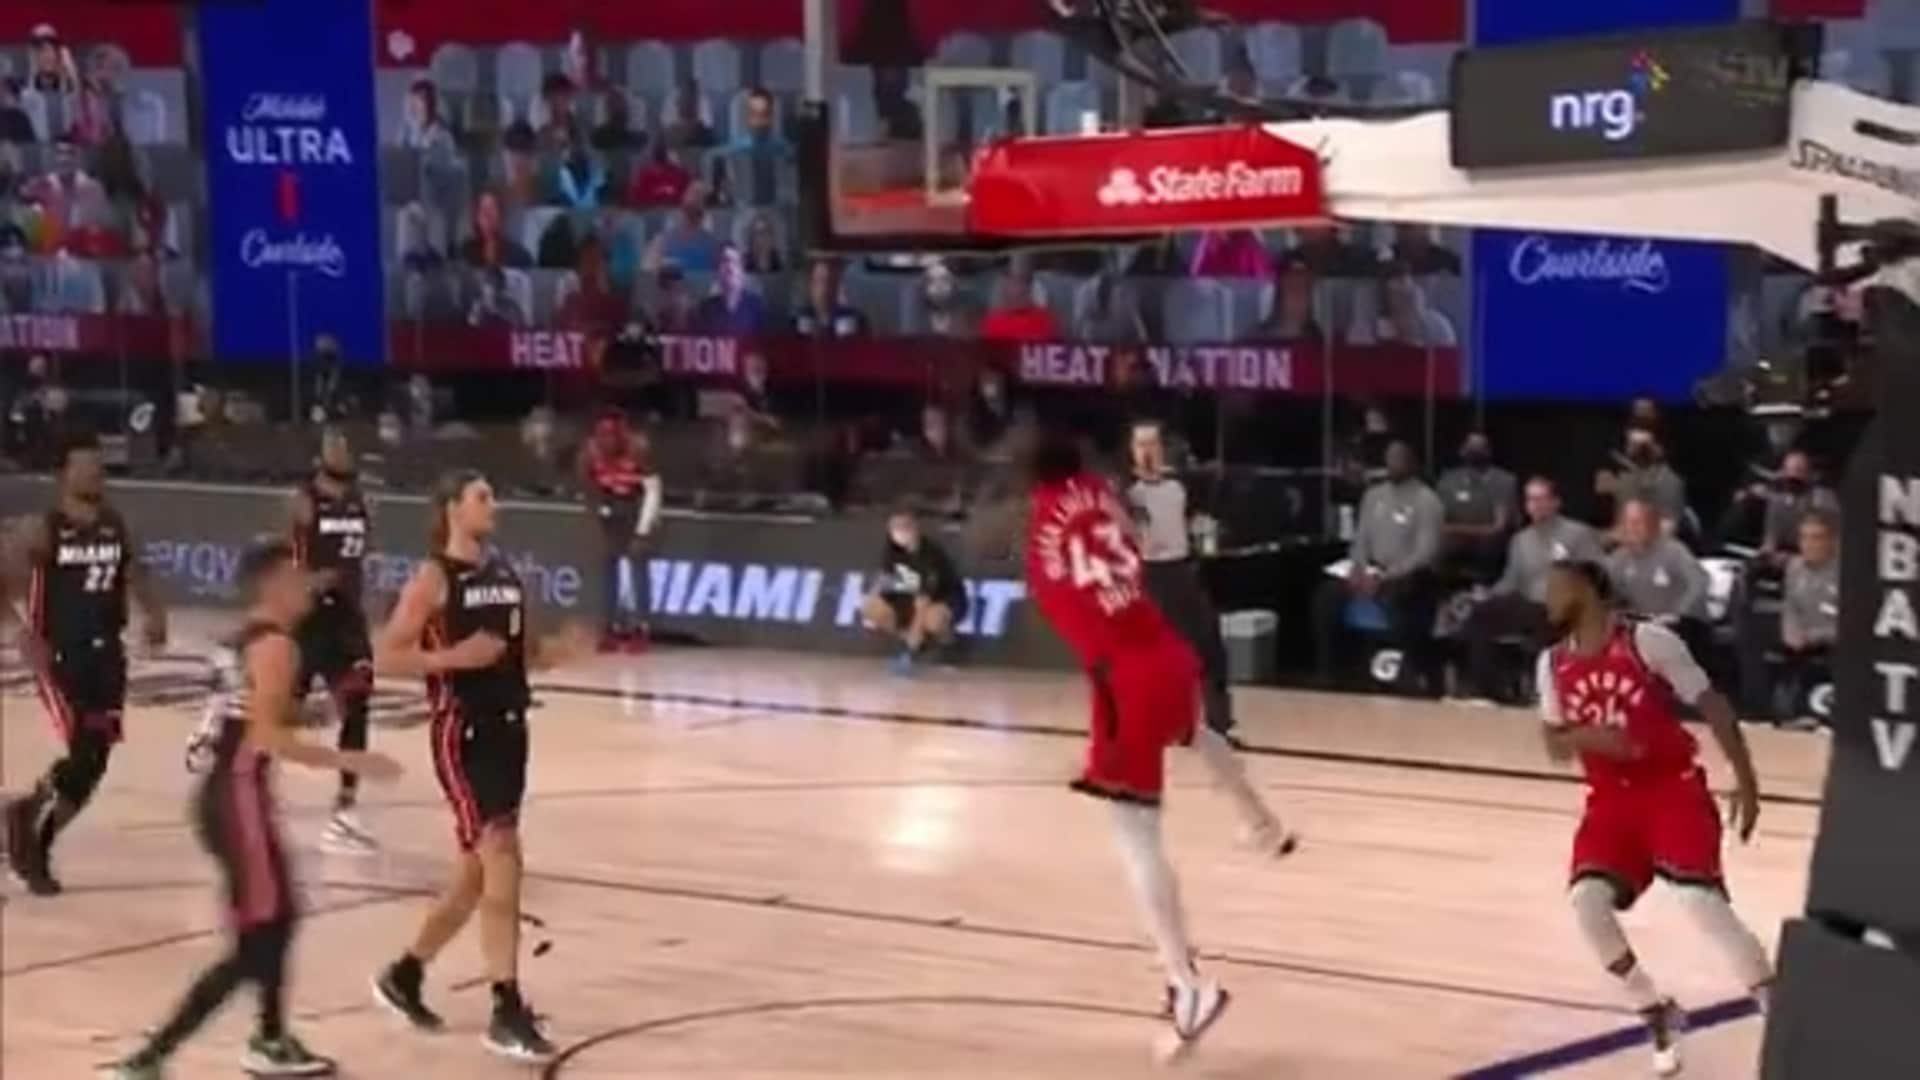 Raptors Highlights: Siakam Alley Oop - August 3, 2020